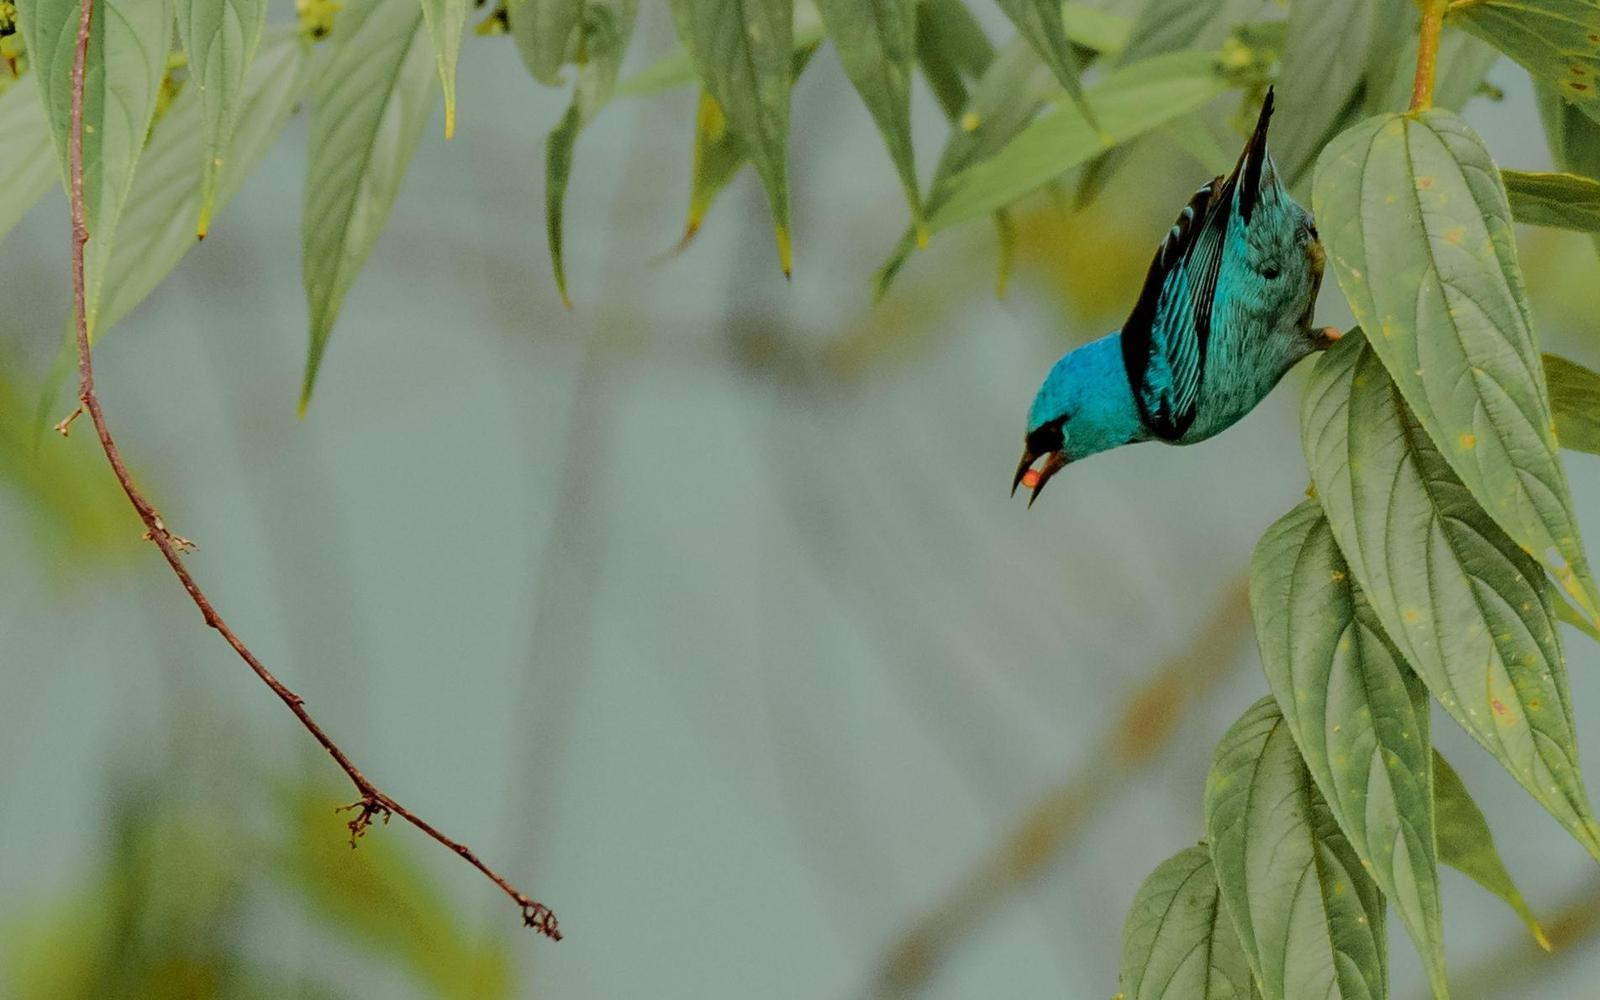 Blue Dacnis Photo by Keshava Mysore